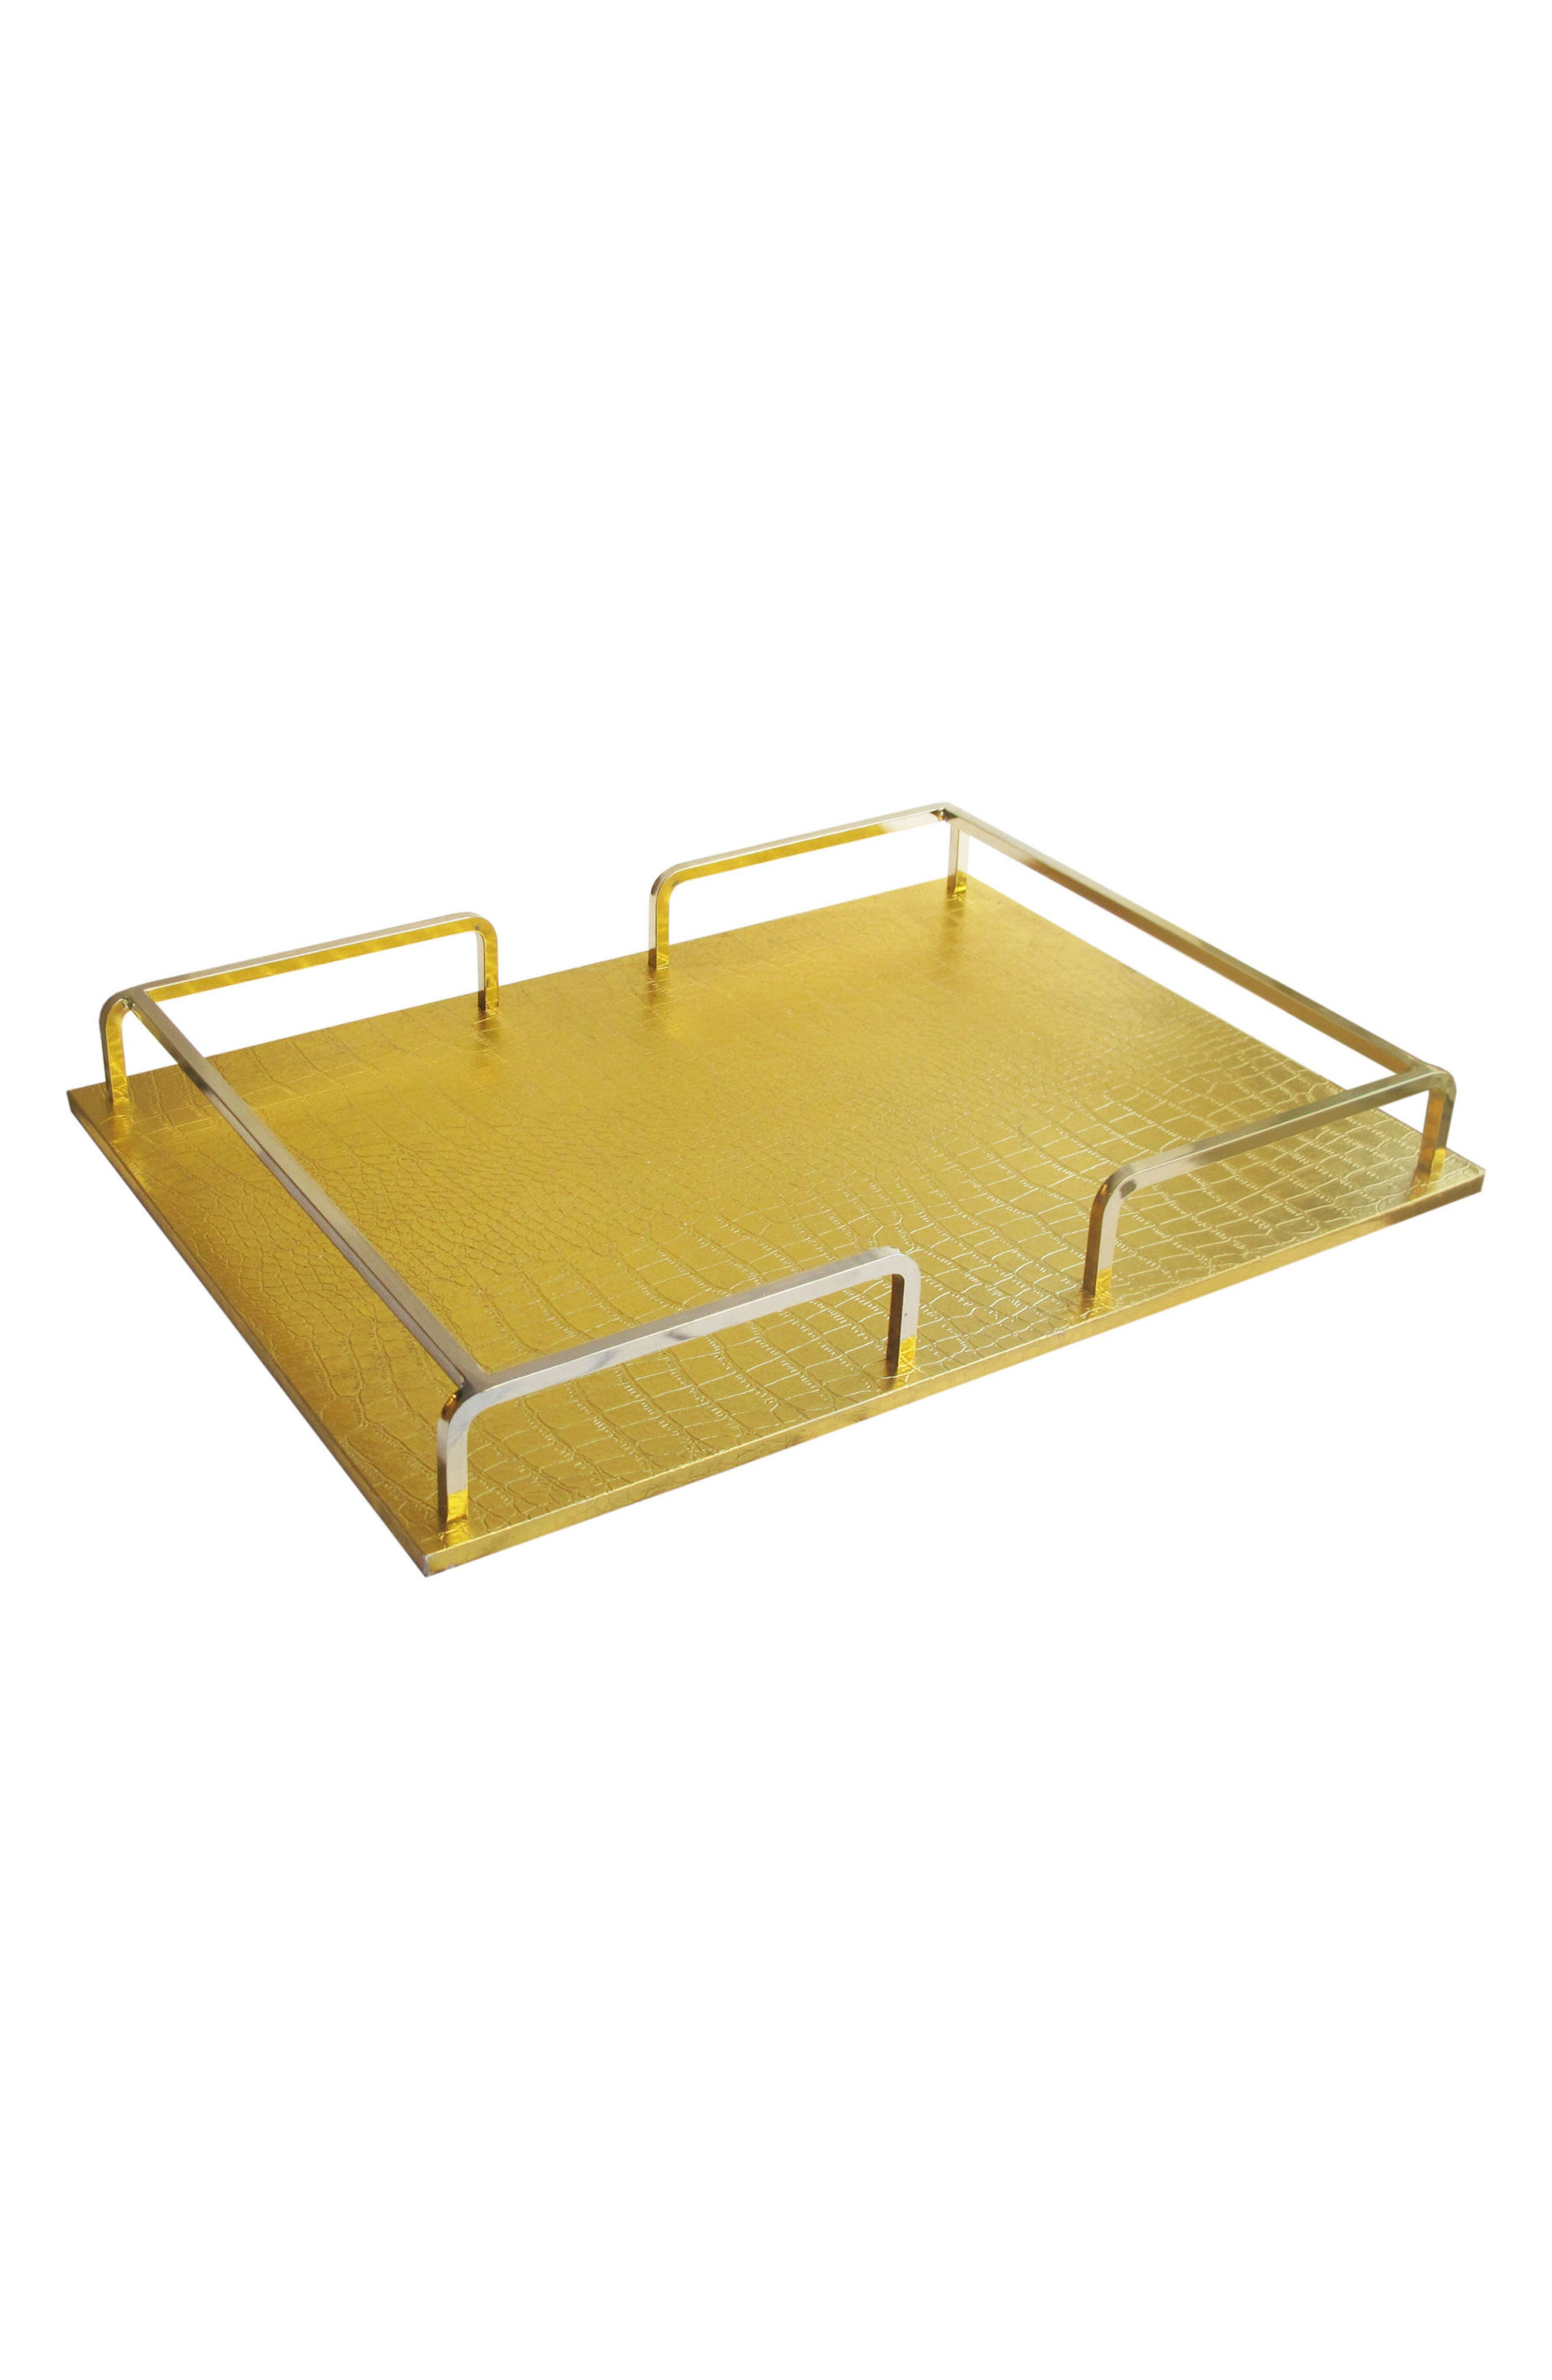 Croc-Embossed Serving Tray,                             Main thumbnail 1, color,                             710